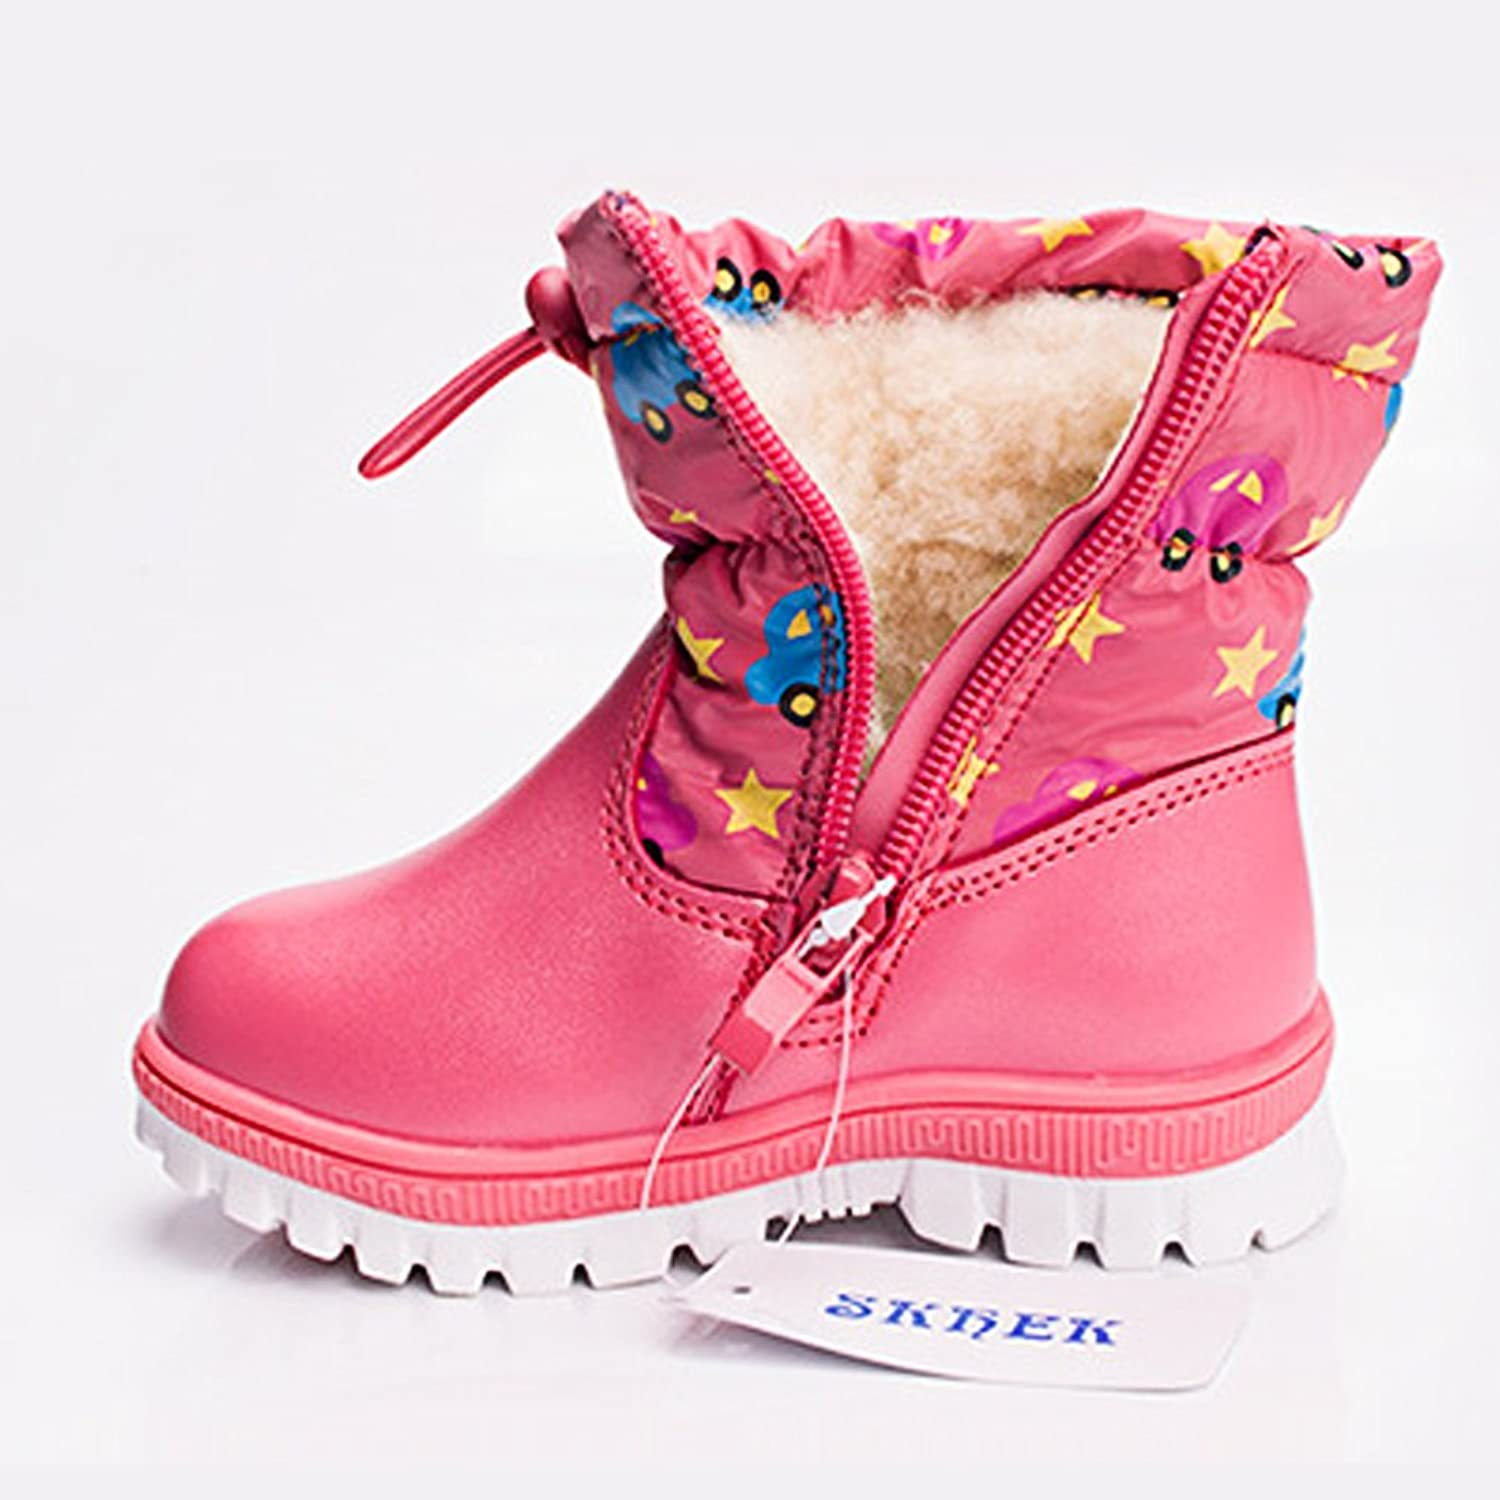 ZUSERIS Kids Girls Winter Snow Boots Fashion Waterproof Cozy Warm Fur  Inside PU Leather Boots with High-top Zip: Amazon.co.uk: Shoes & Bags